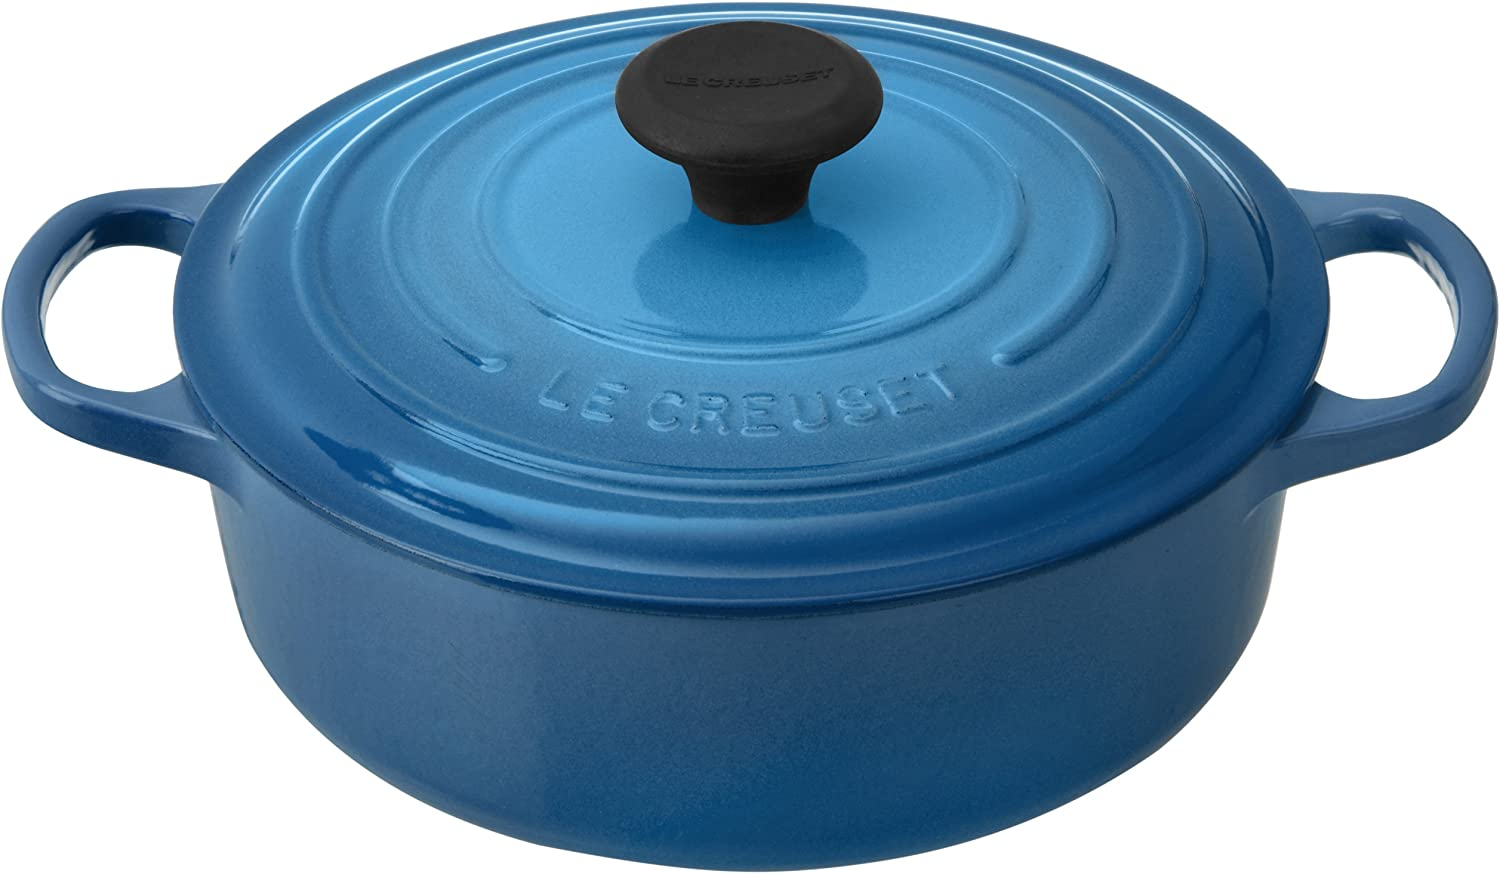 Le Creuset Signature Round Wide 3-1/2-Quart Dutch Oven, Marseille